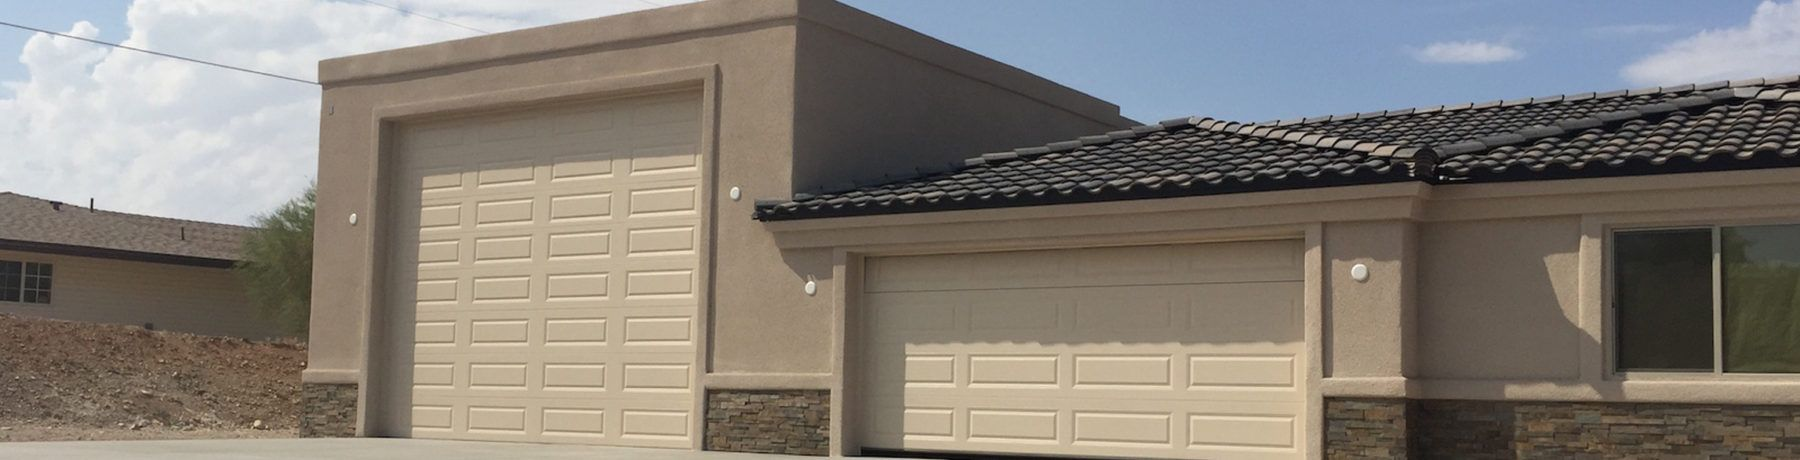 new door garage scottsdale residential az gothic doors gallery of repair phoenix